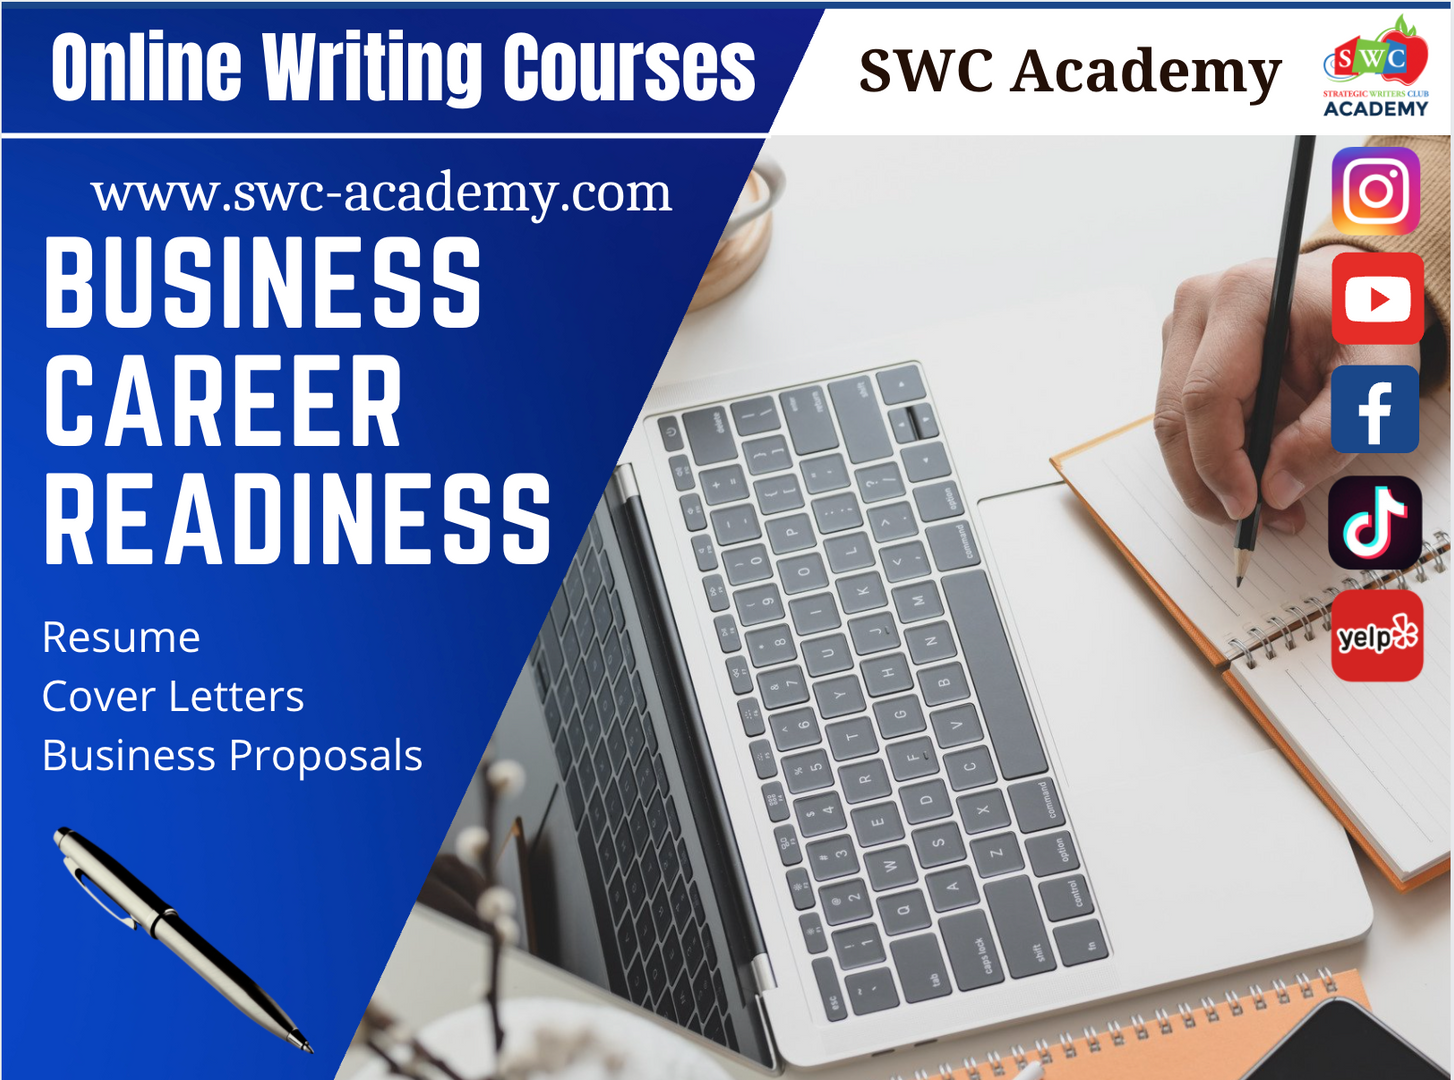 Business/Career Course